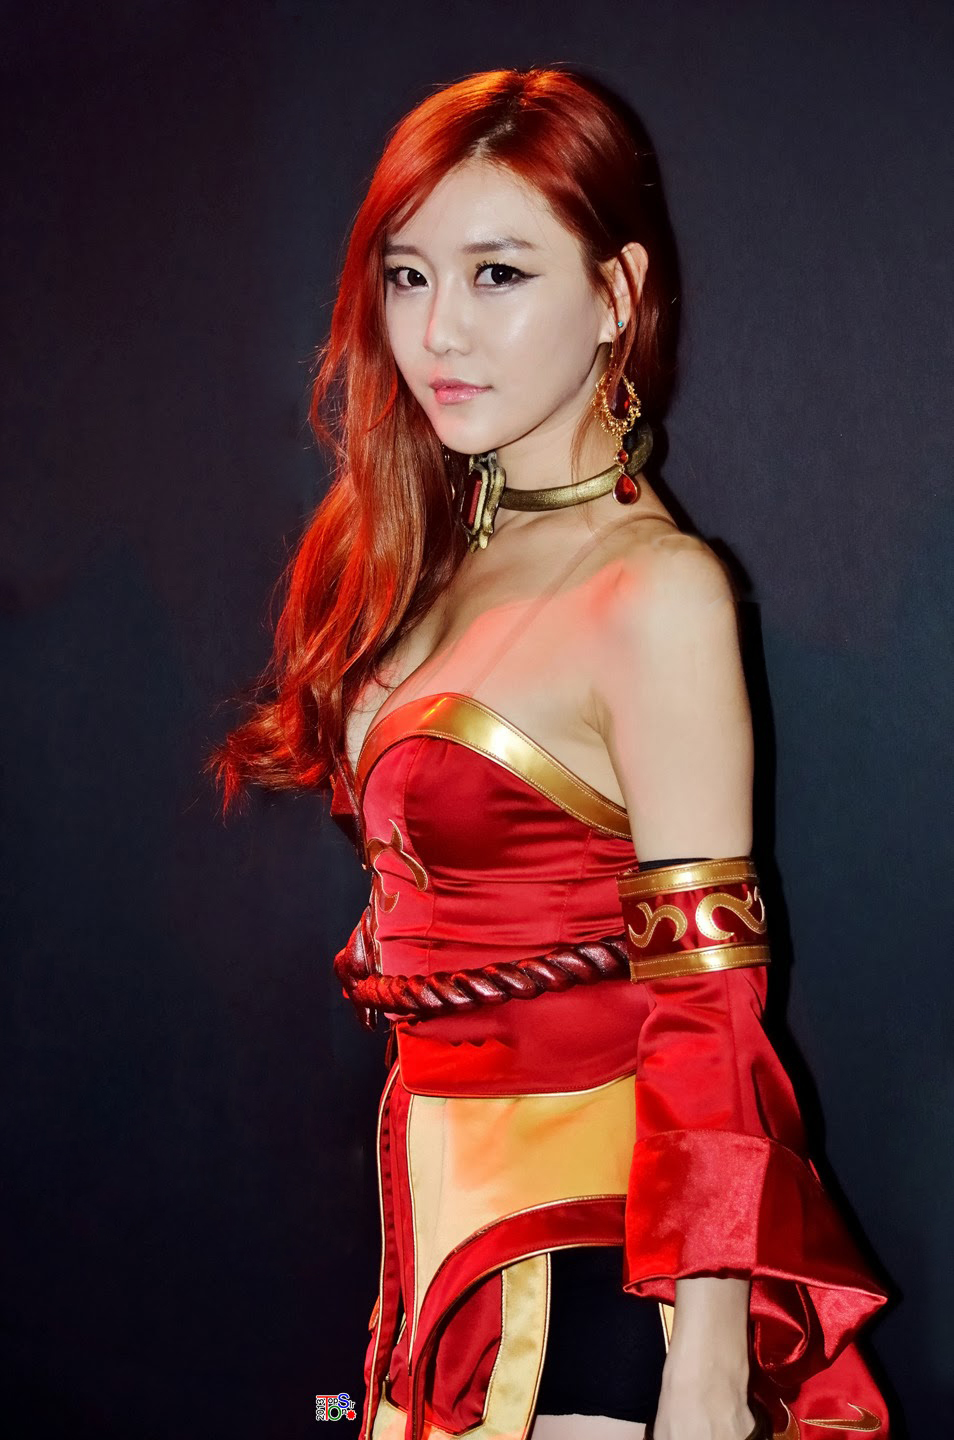 Choi Seul Ki performed in a costume from the DOTA 2 game character, Lina, a female hero agent whose bosom threaten to burst out dangerously besides her other skills.